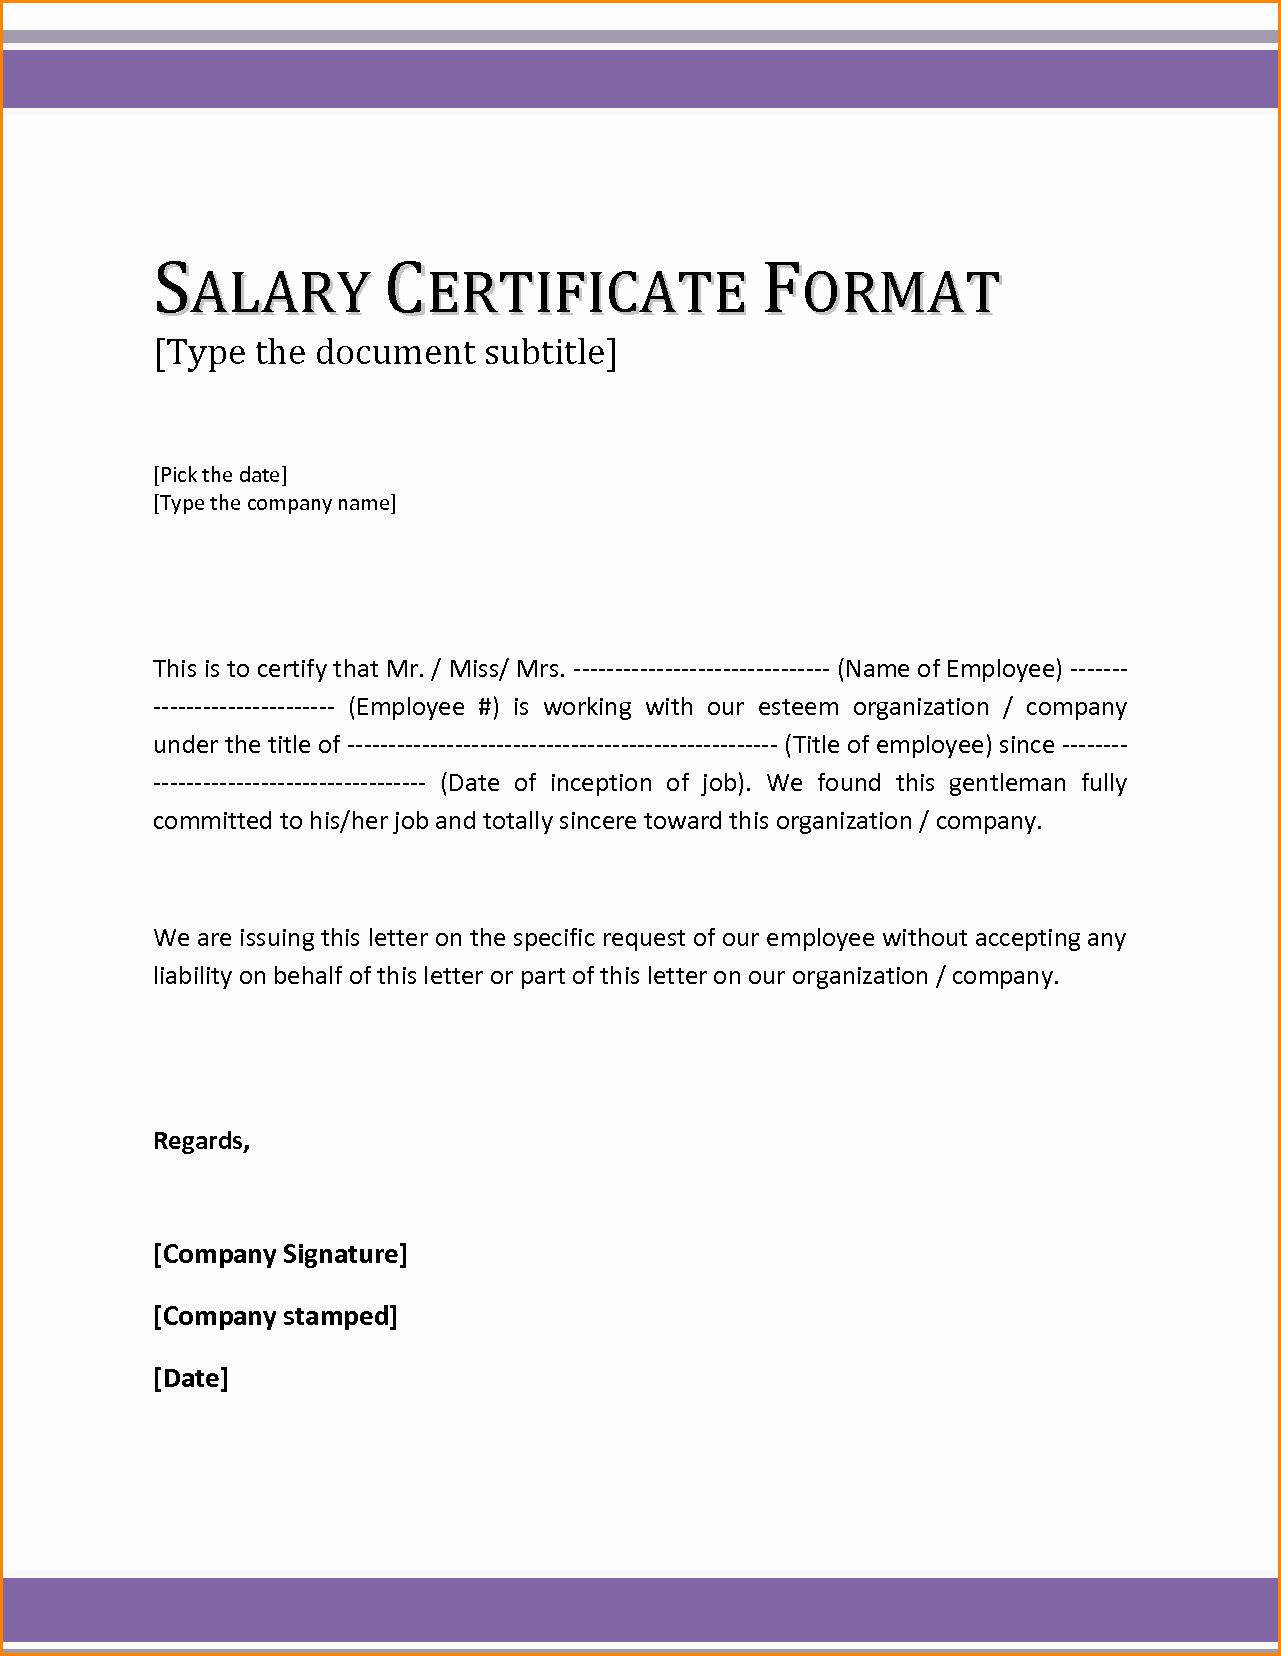 Pin on Certificate Customizable Design Templates